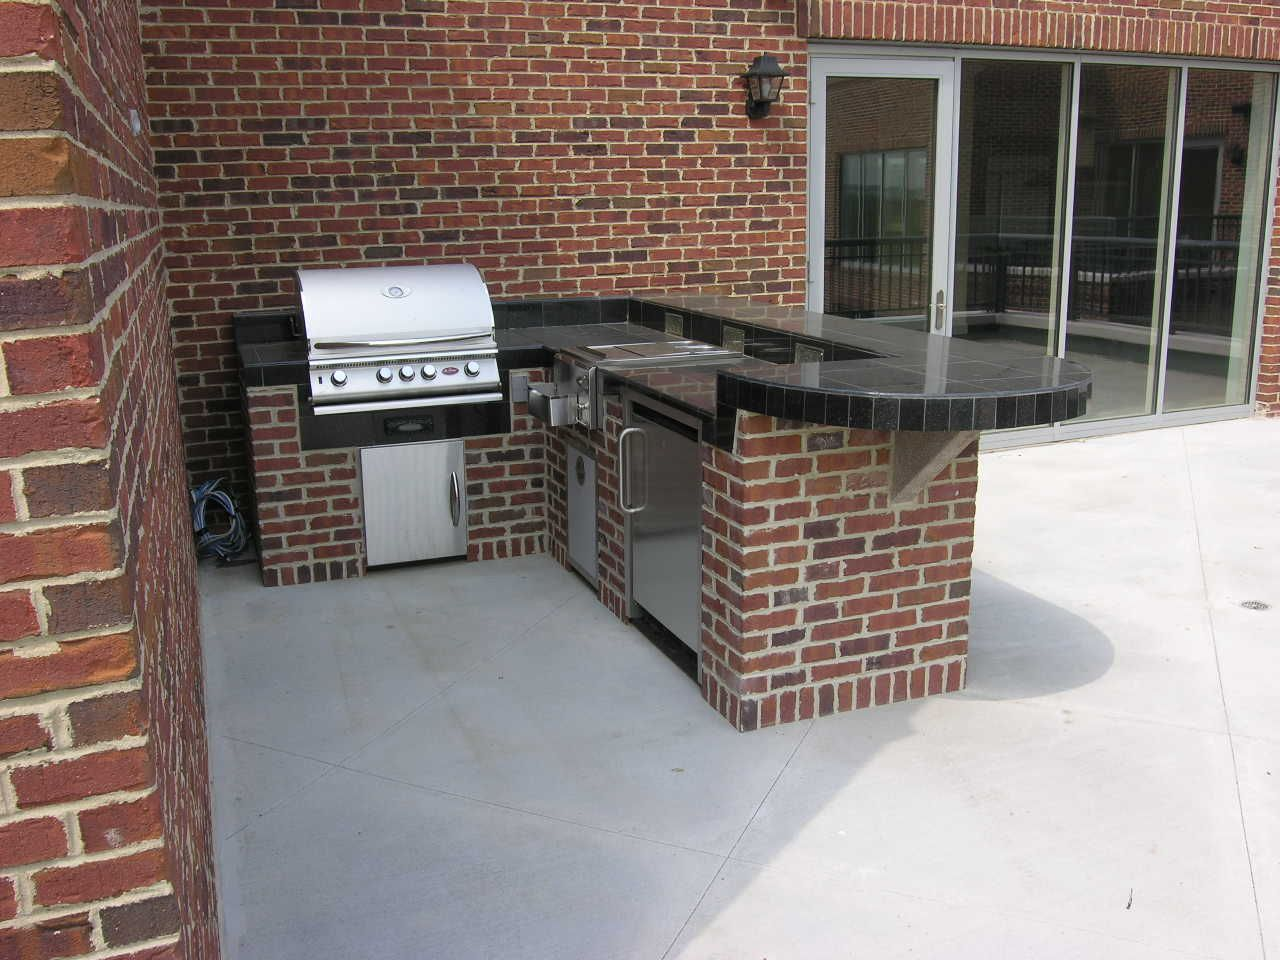 L Shaped Brick Outdoor Kitchen With A Grill Refrigerator And Burners This L Shaped Outdoor Kitchen Is Perfect Fo Outdoor Kitchen Backyard Kitchen Brick Bbq